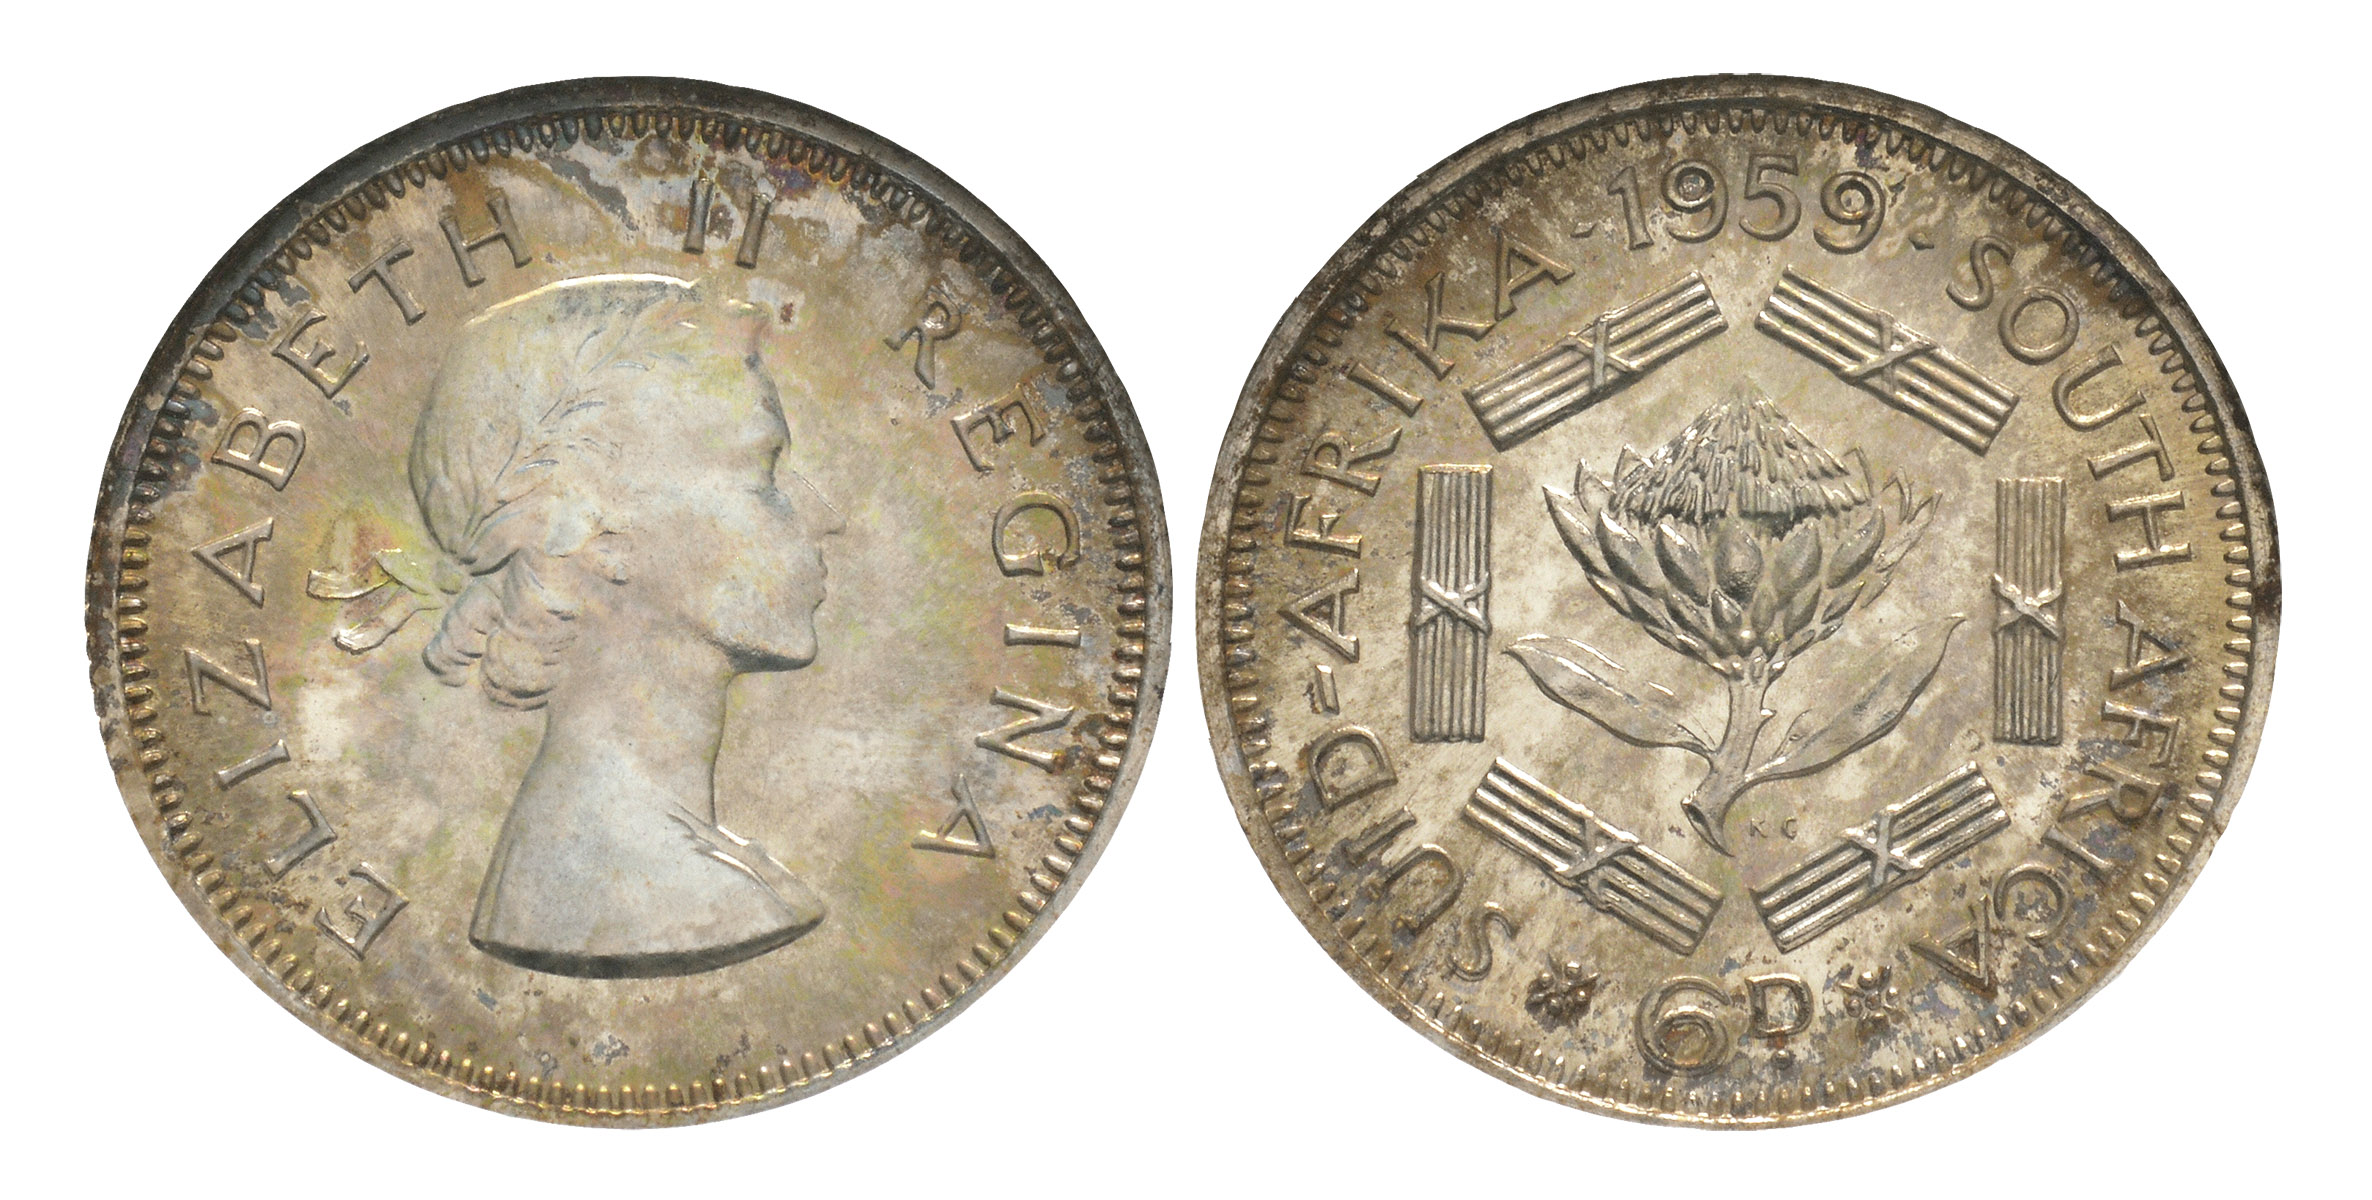 World Coins - South Africa - Elizabeth II - 1959 - Proof Sixpence